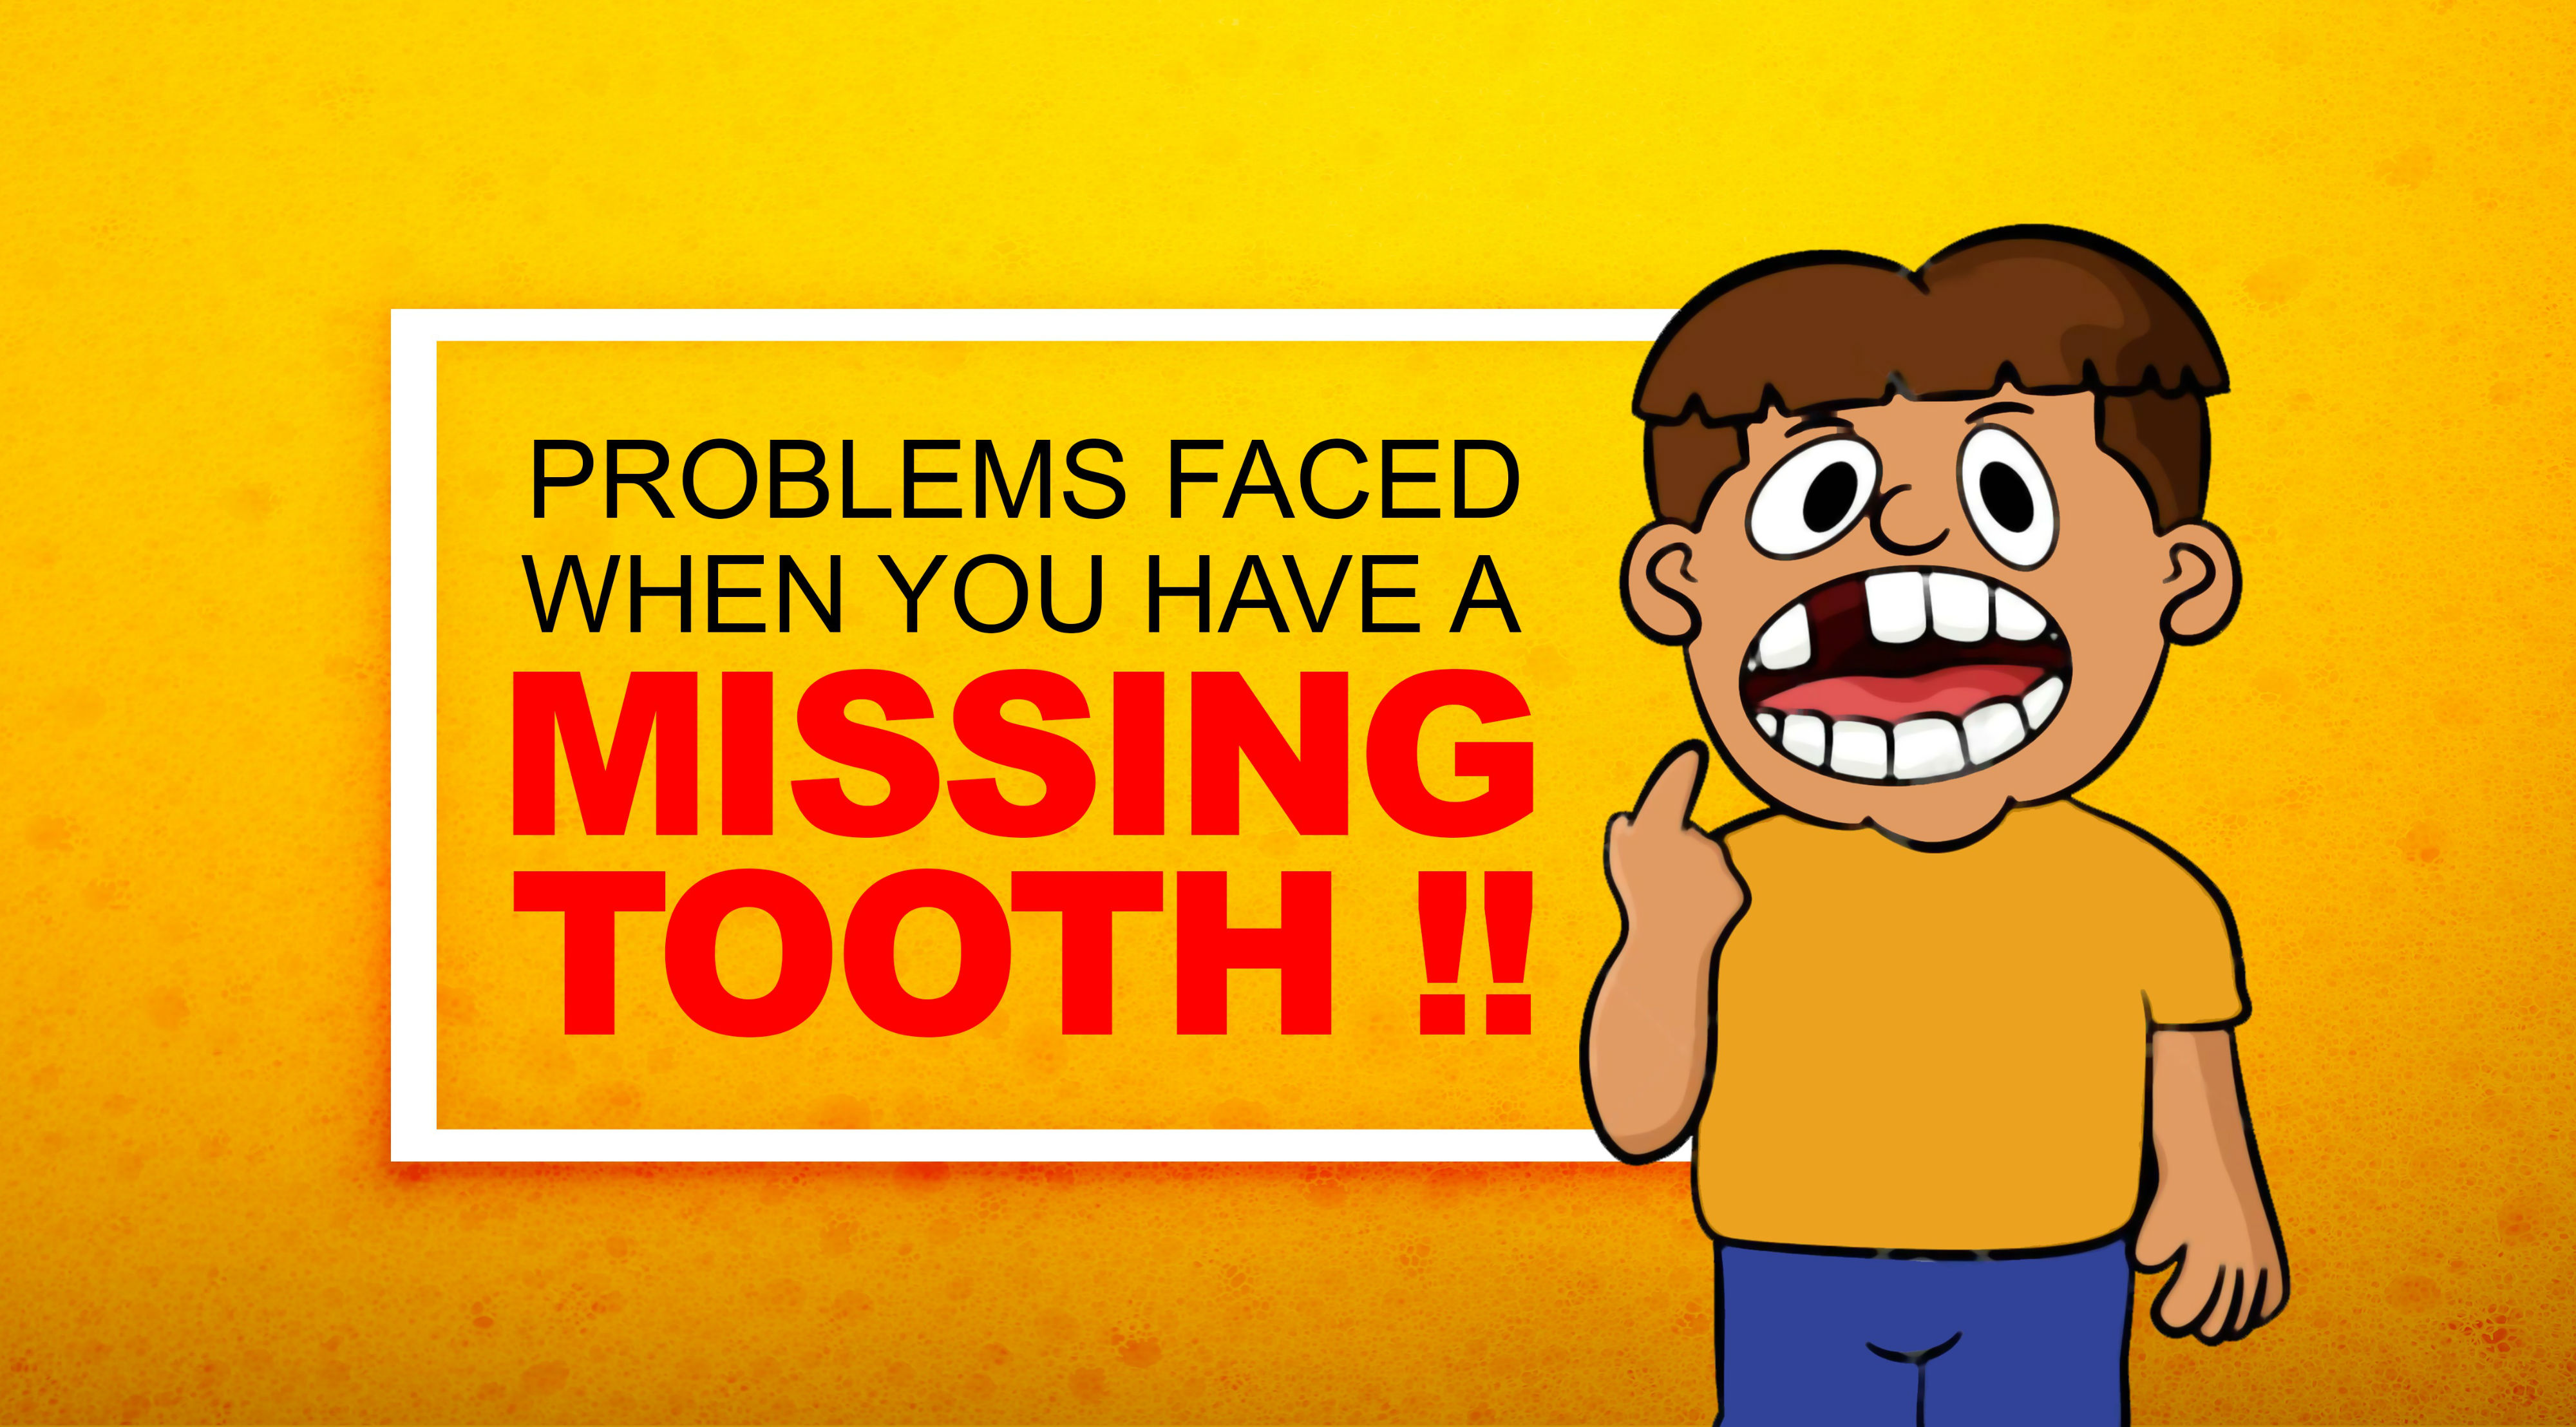 Tooth missing surgery